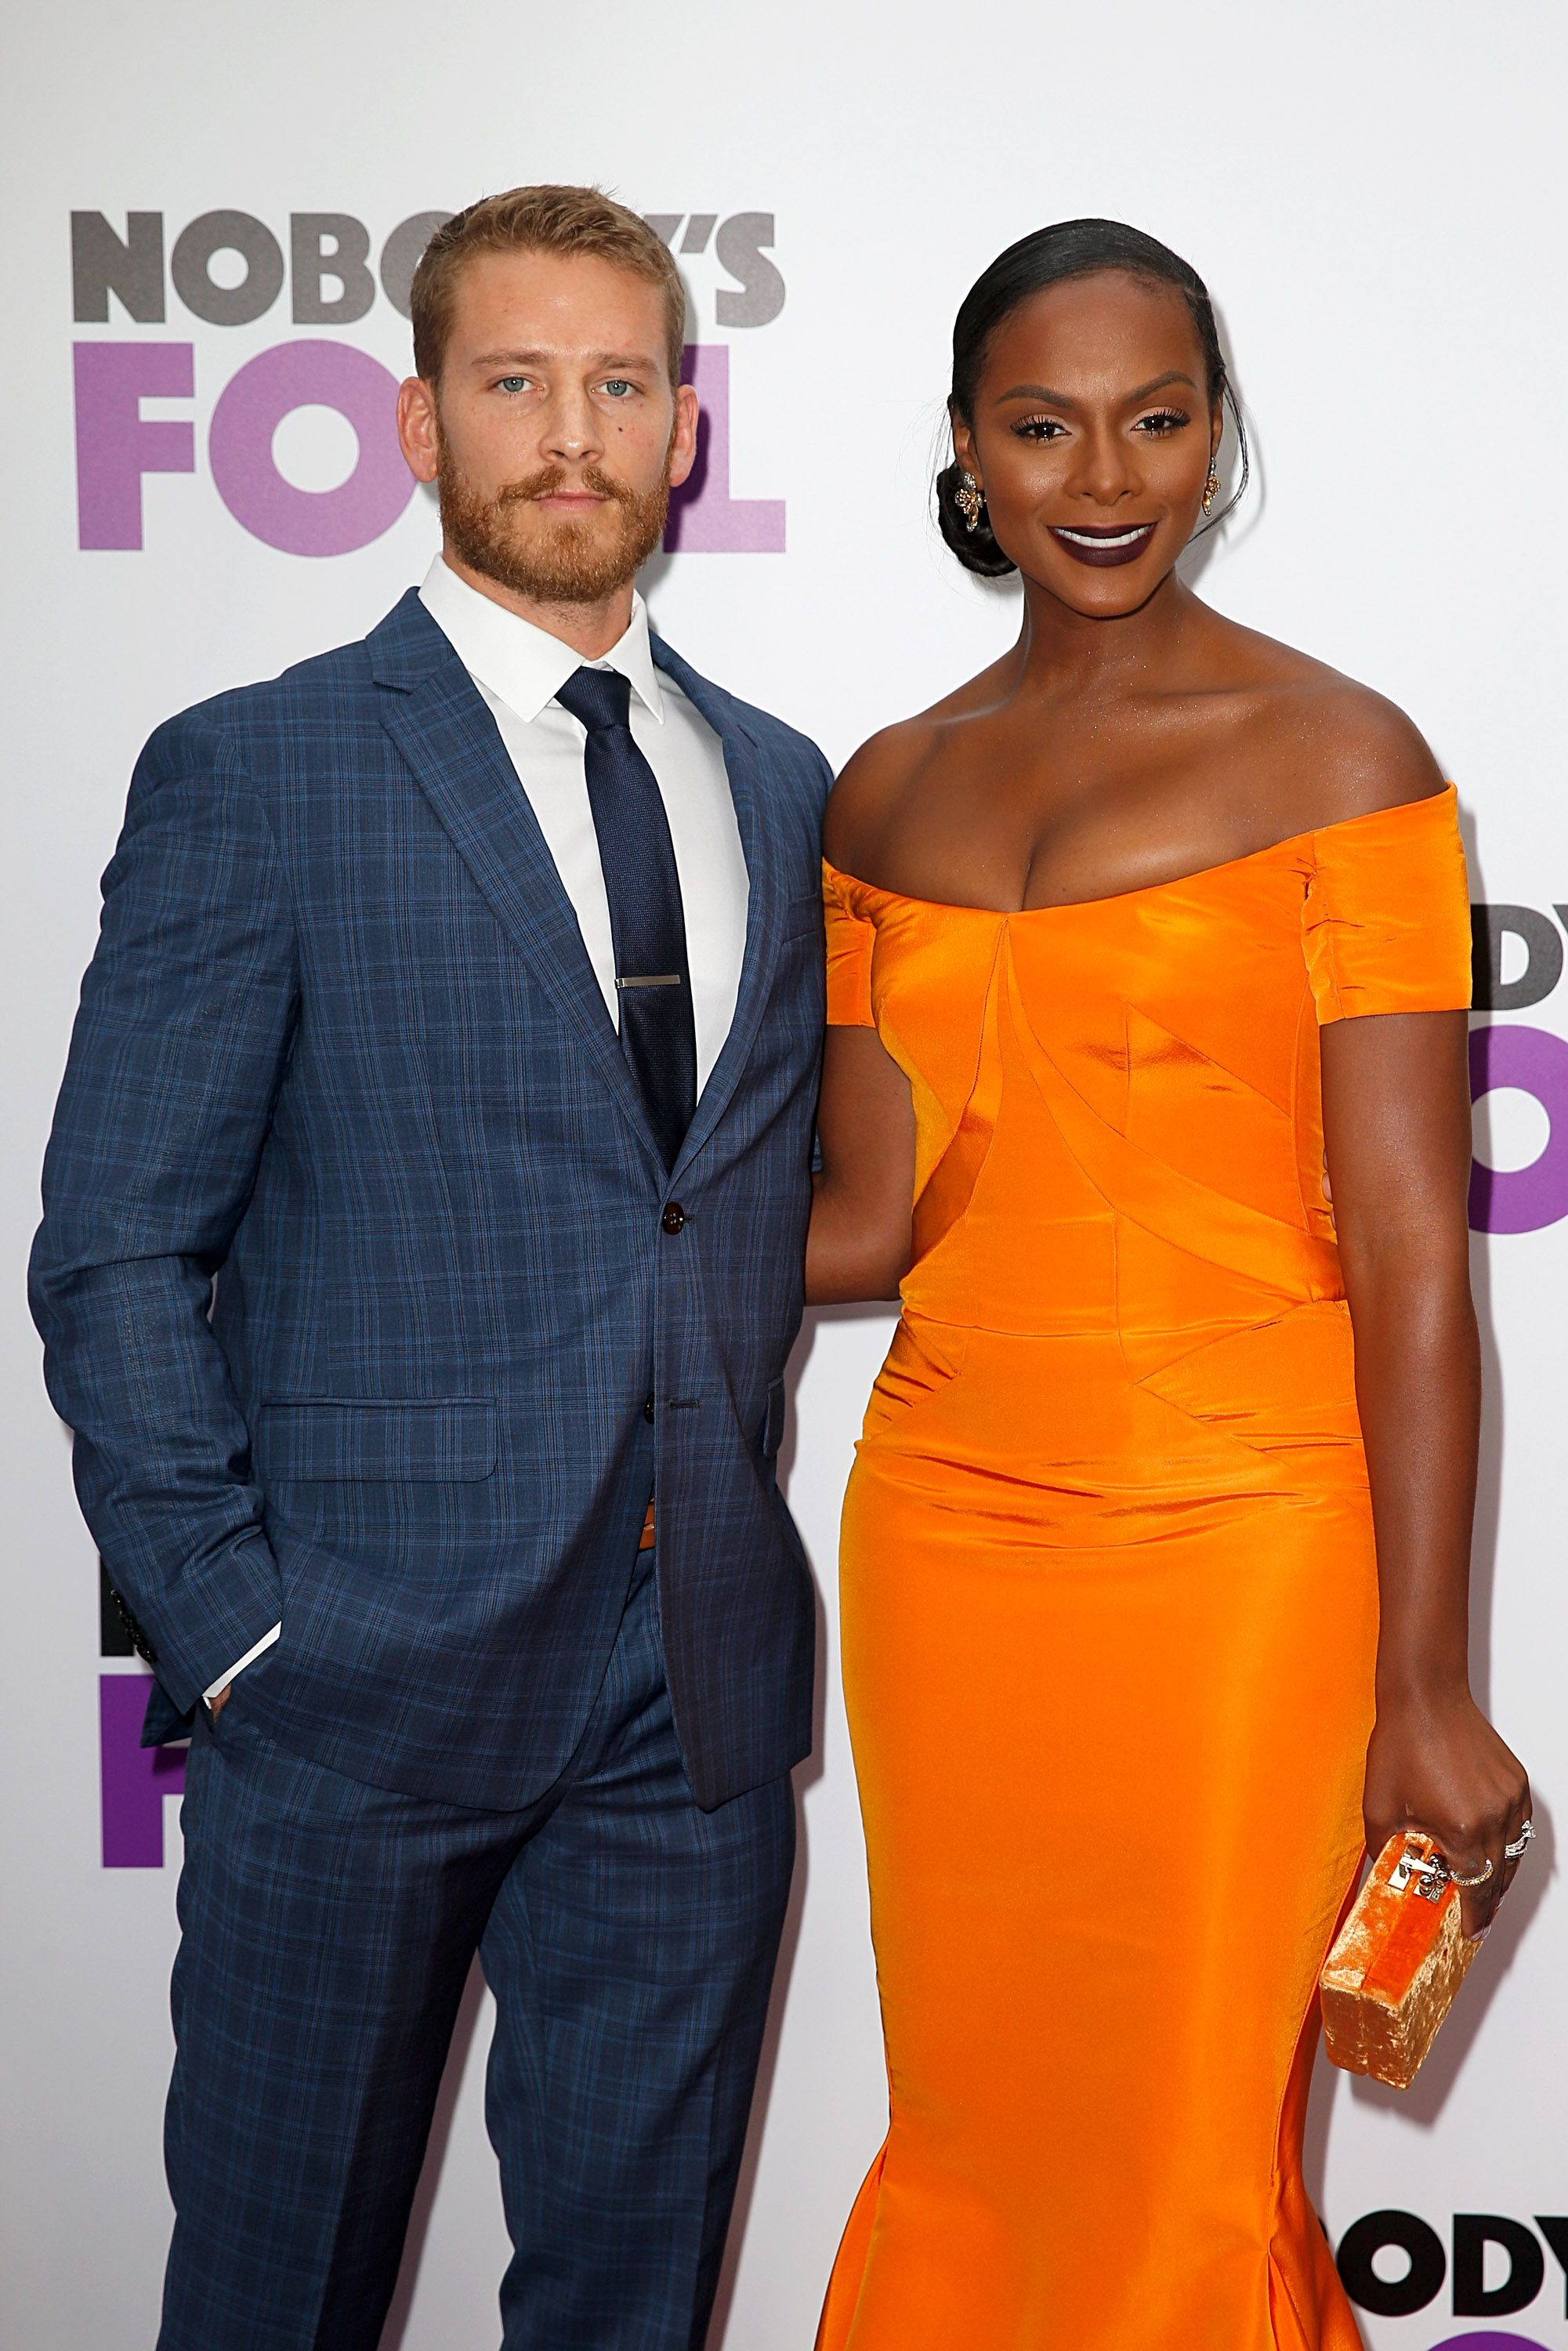 """Nicholas James and Tika Sumpter during the premiere of """"Nobody's Fool""""  in New York City on October 28, 2018. 